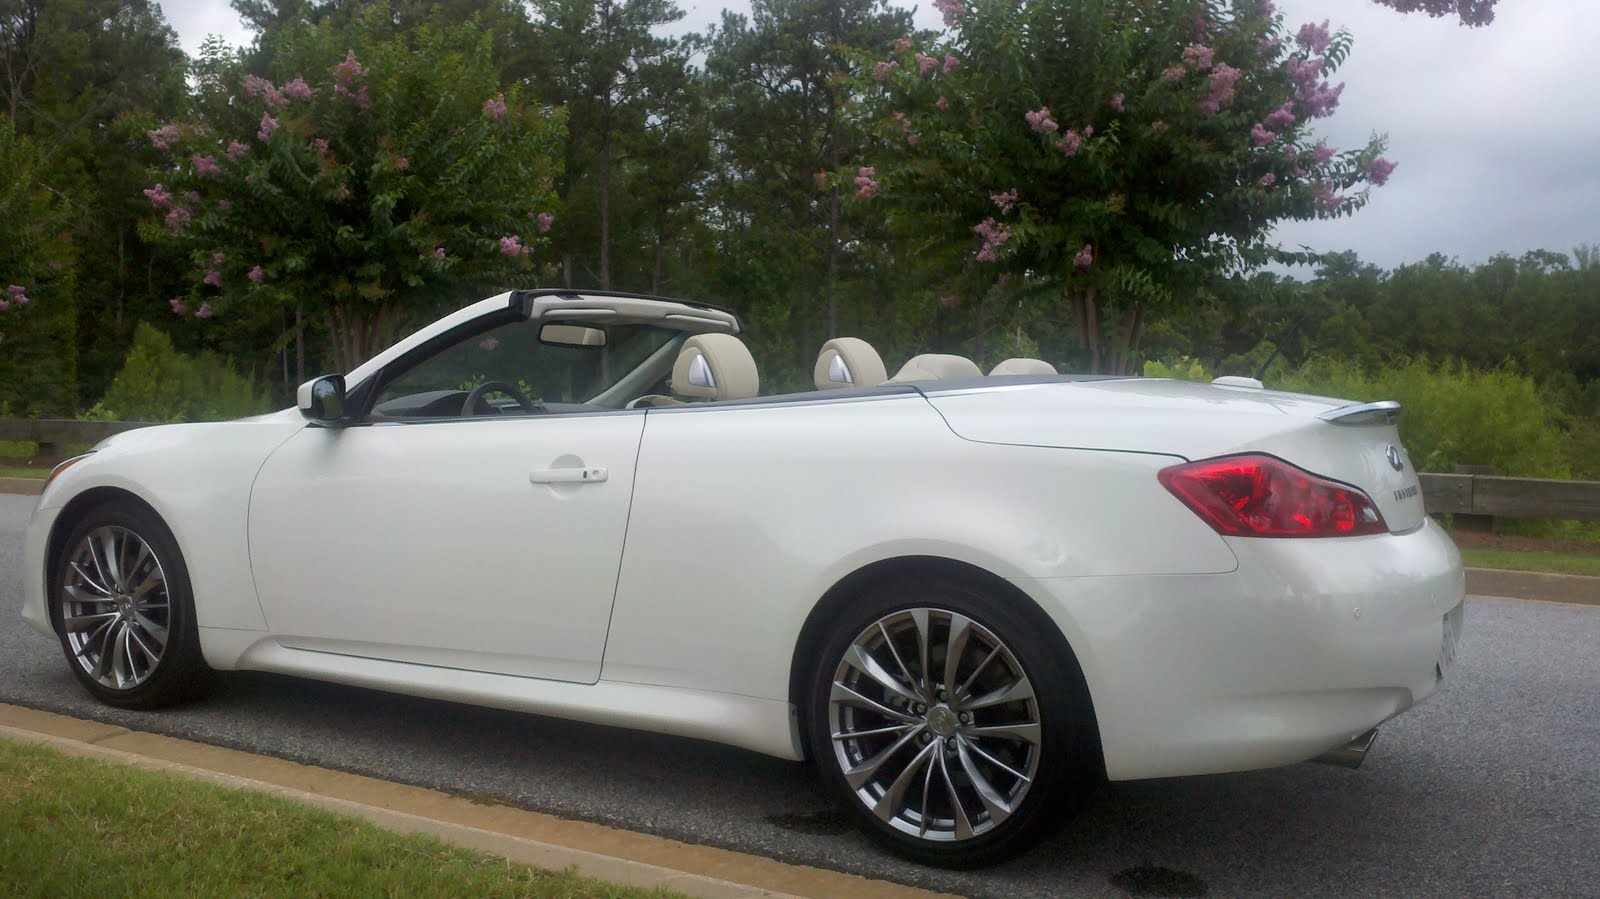 2011 Infiniti G37 Convertible: A High Performance Four Seater